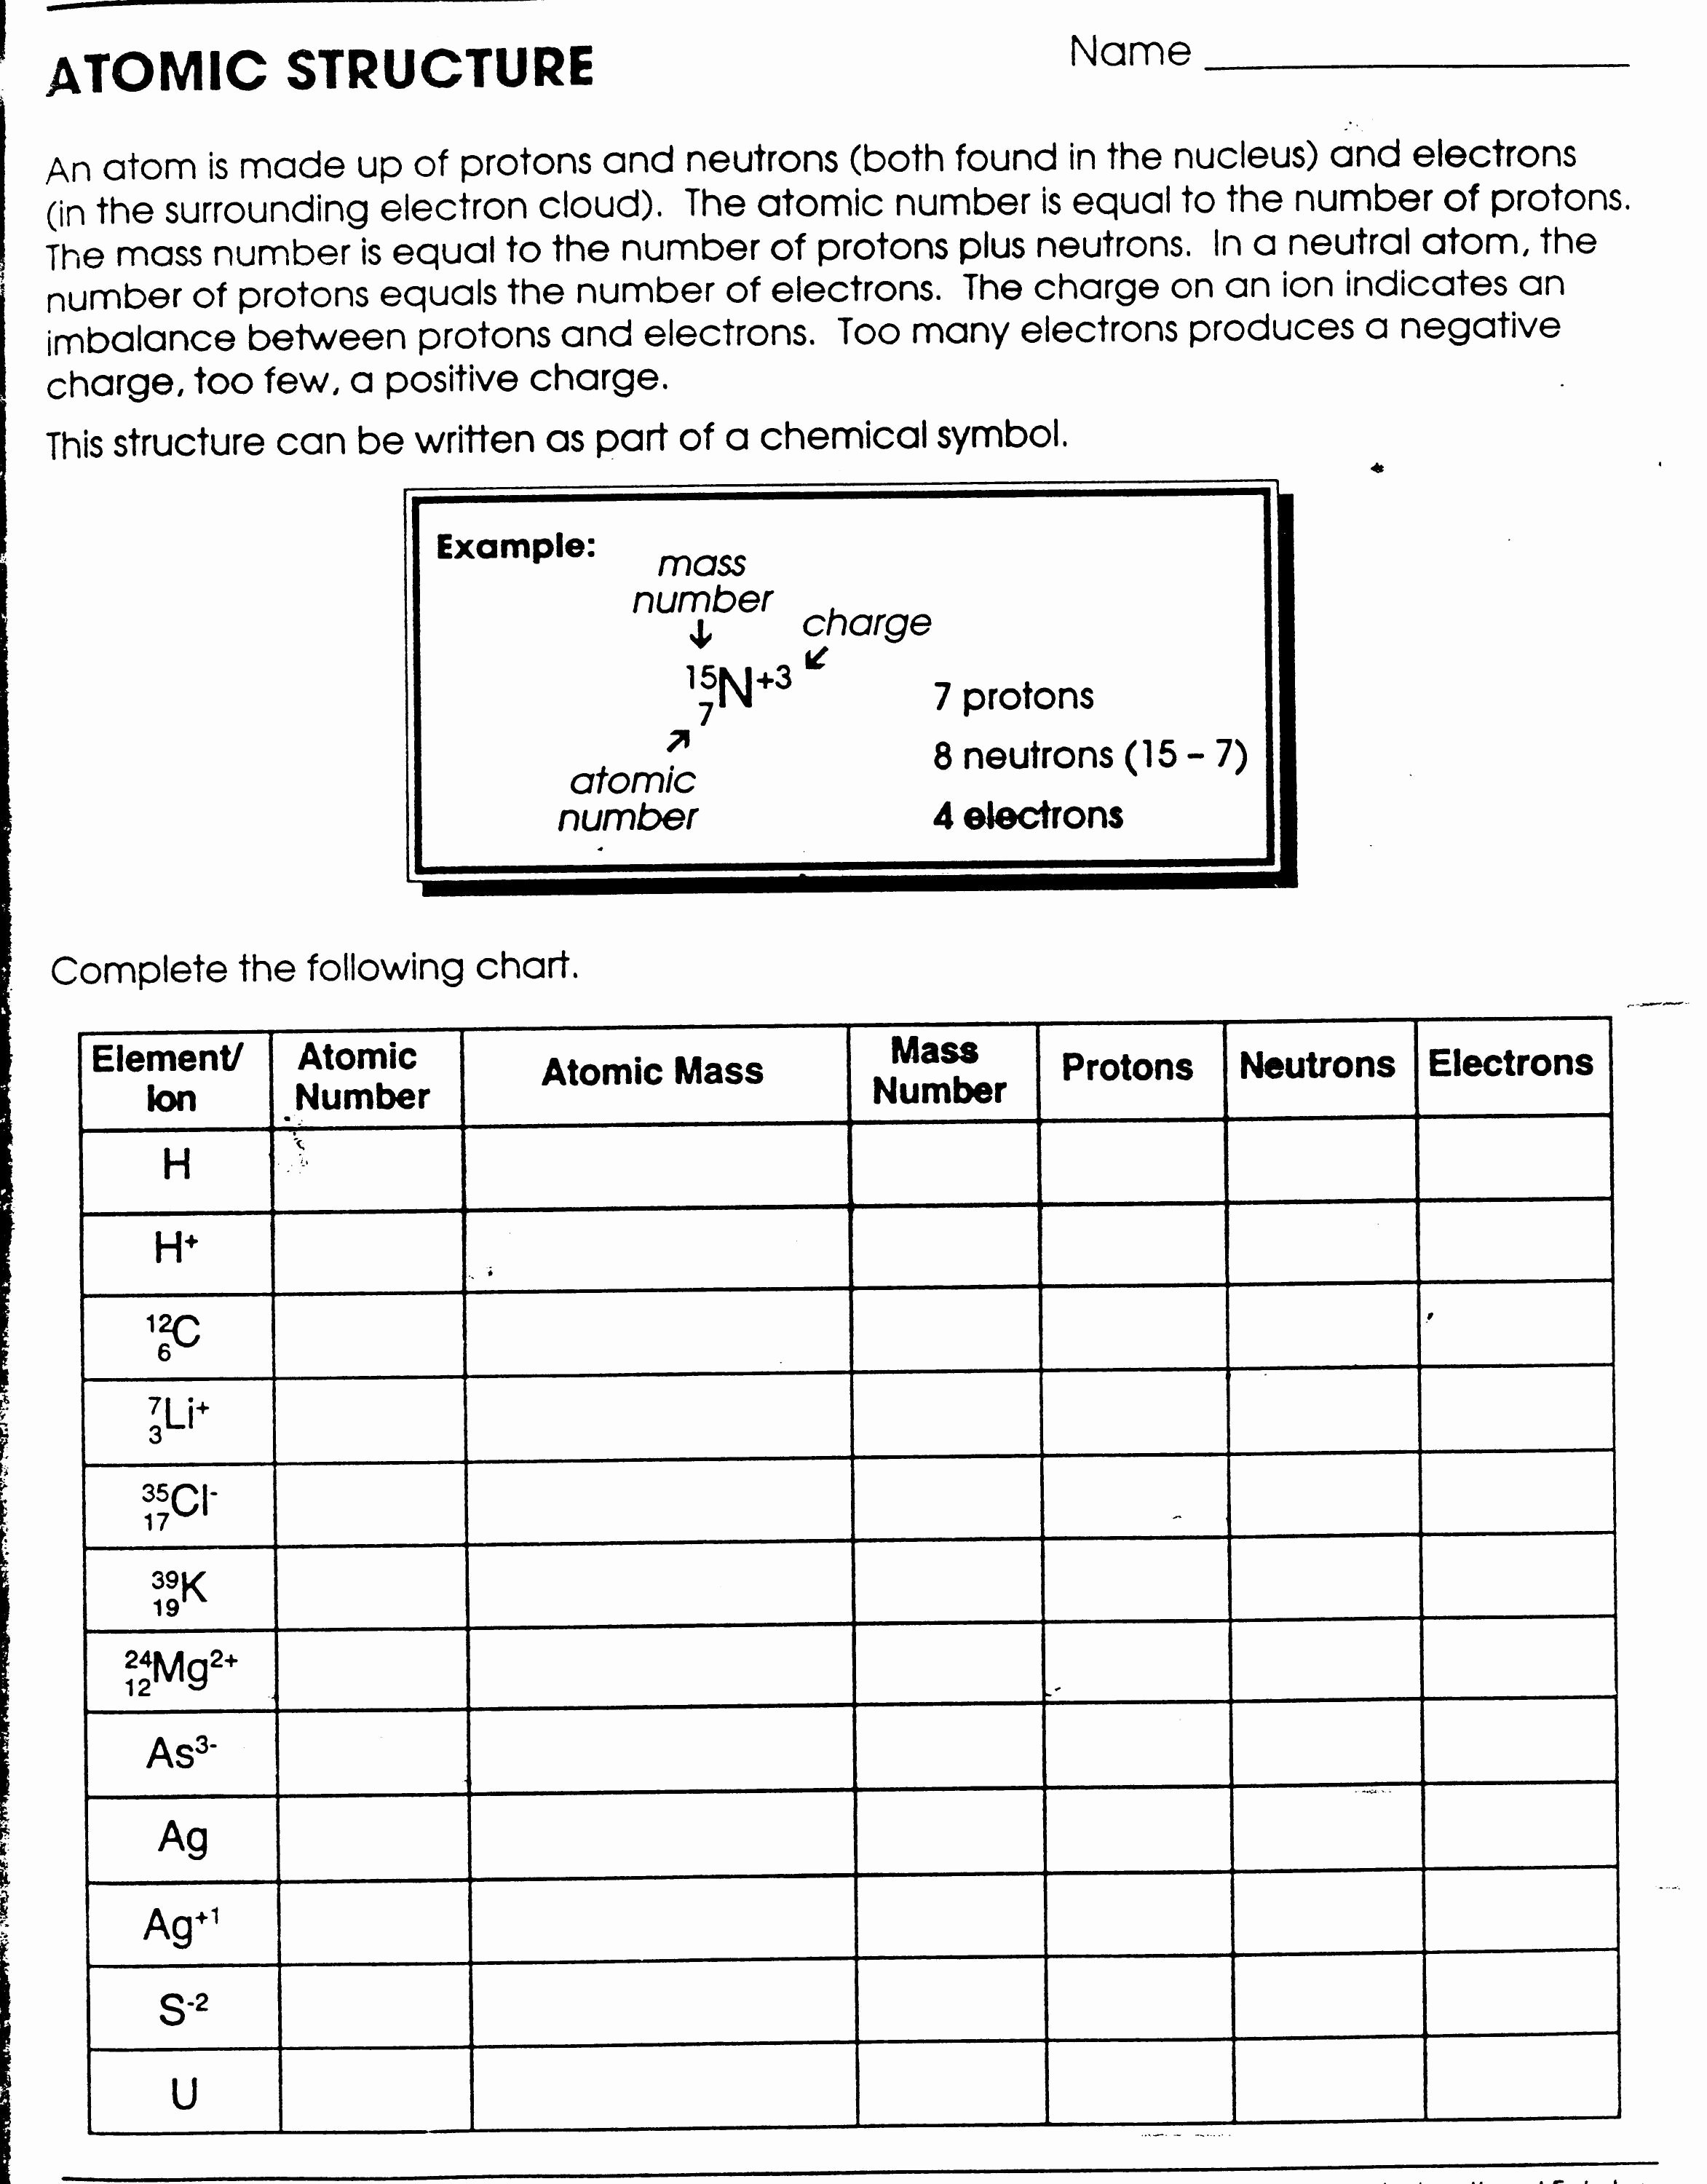 Atomic Structure Worksheet Answer Key Lovely 12 Best Of atomic Structure Diagram Worksheet